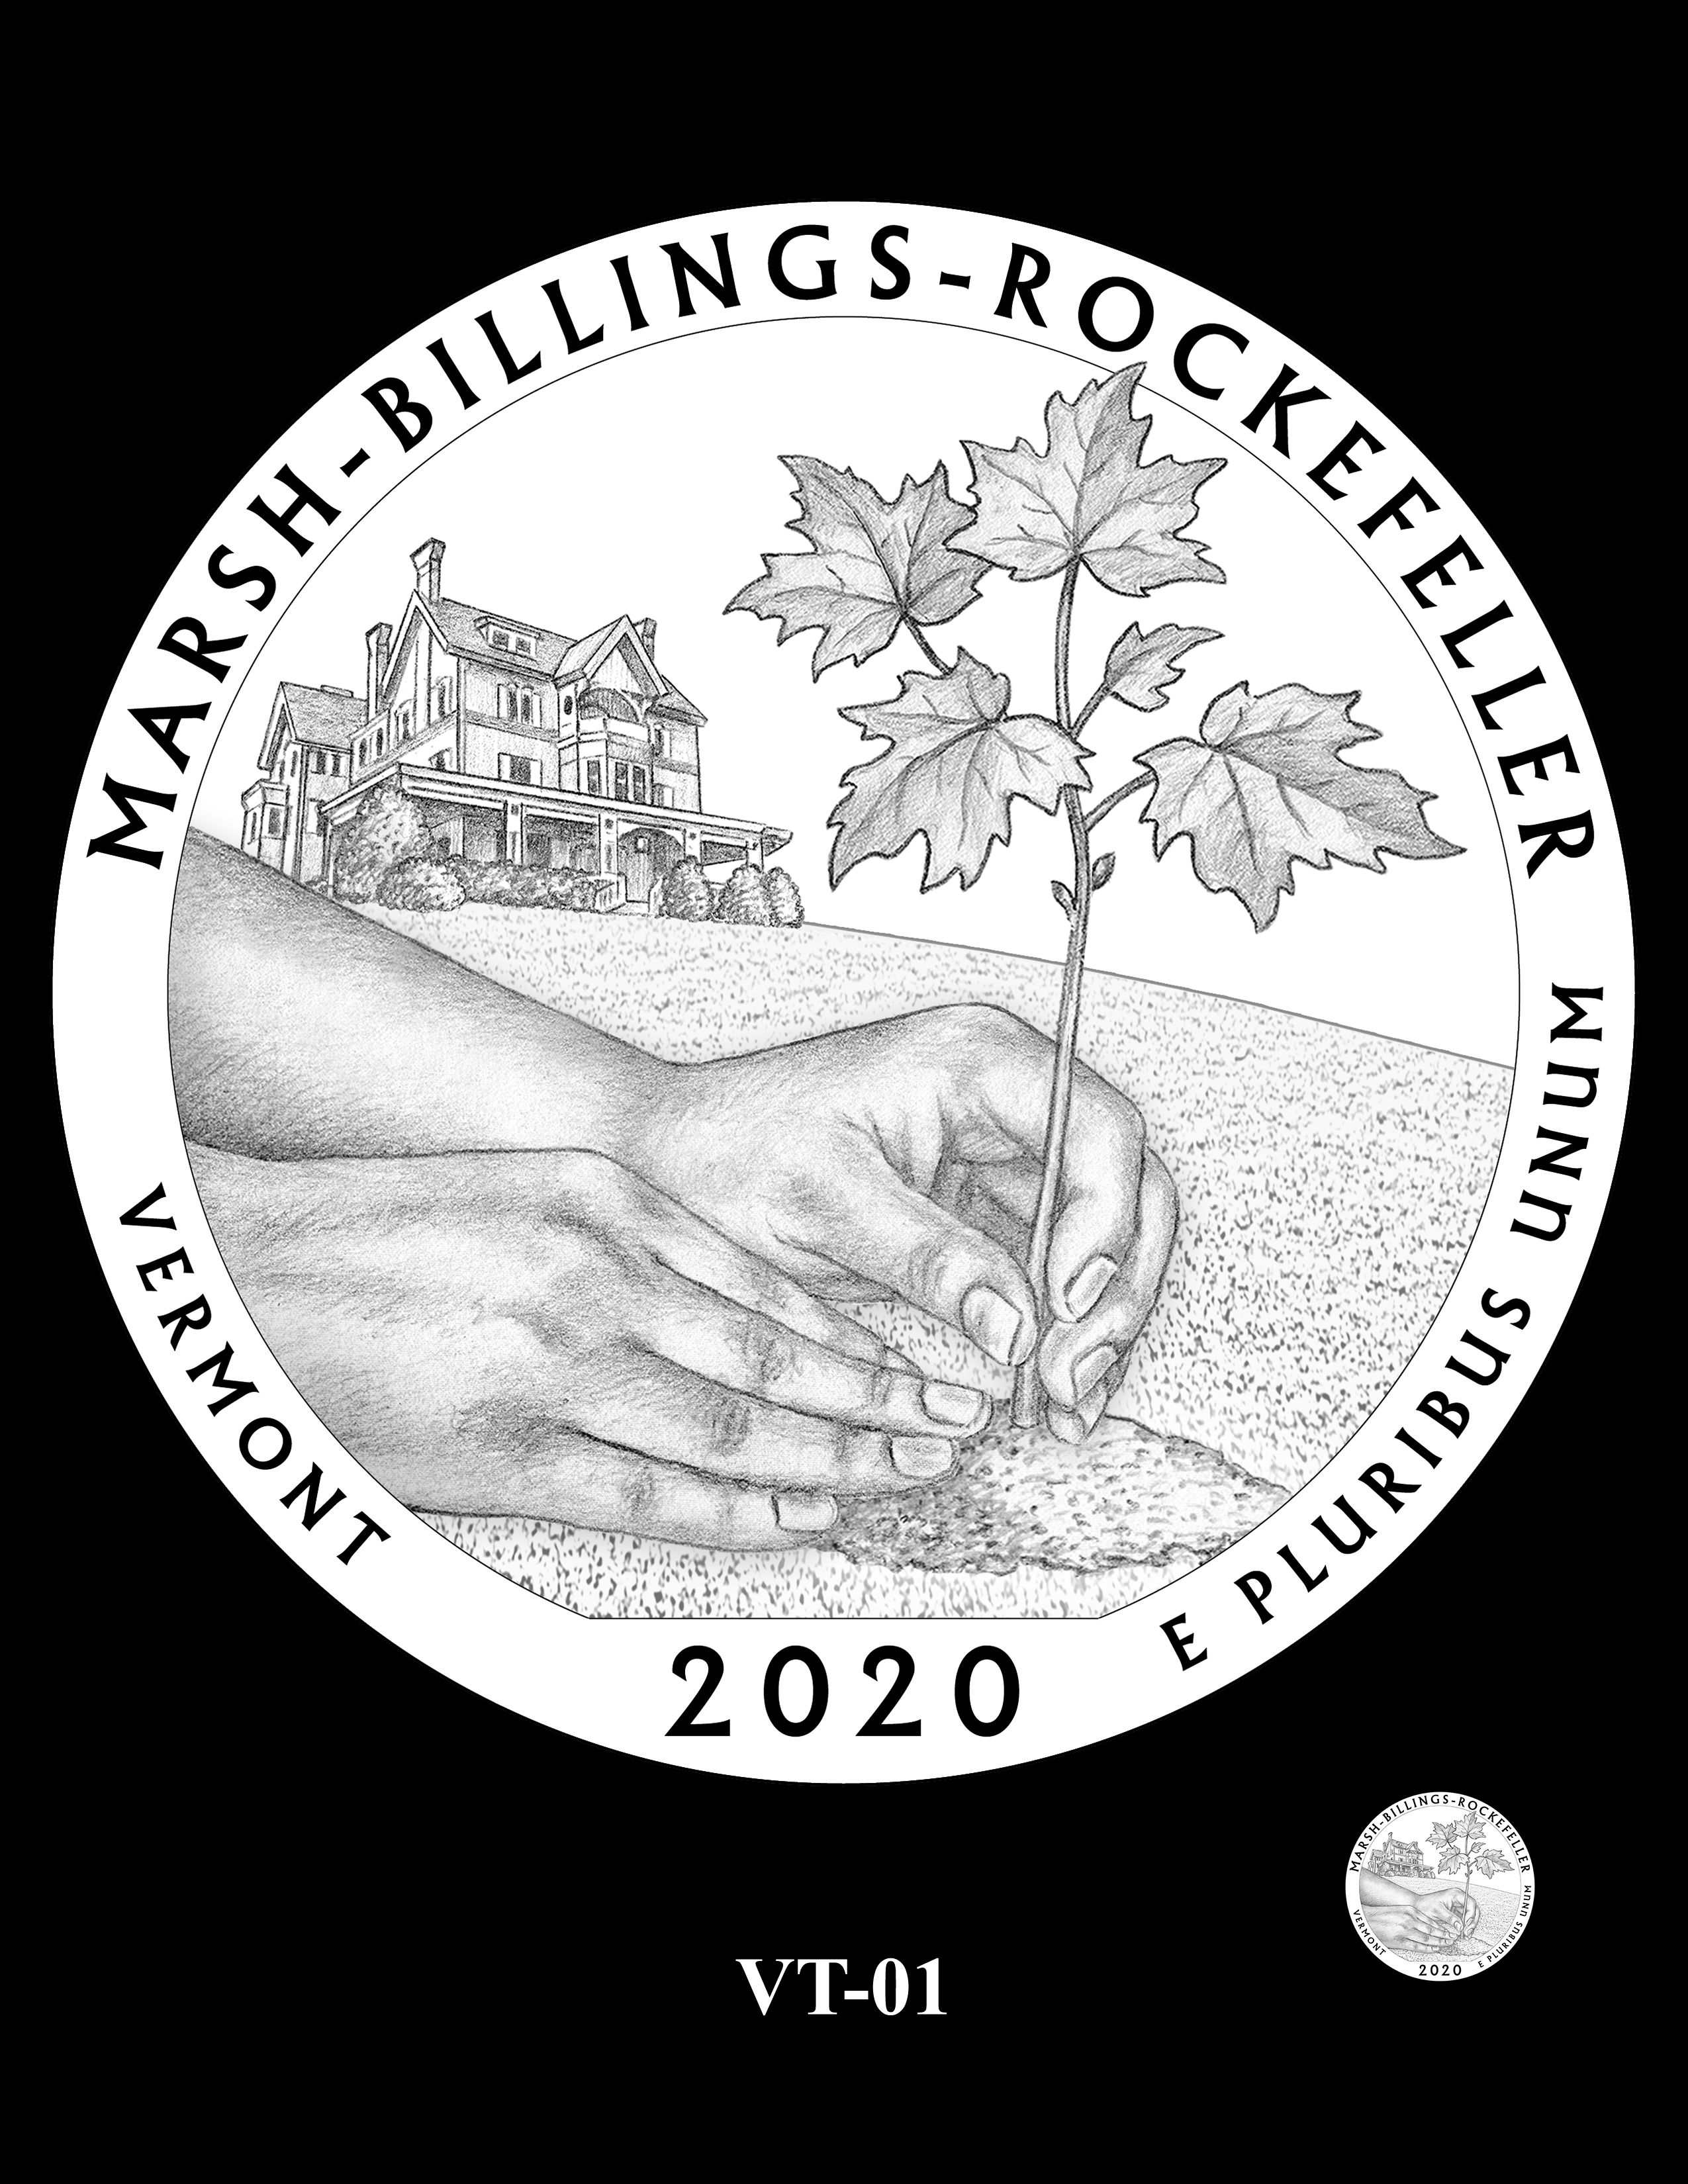 VT-01 -- 2020 America the Beautiful Quarters® Program